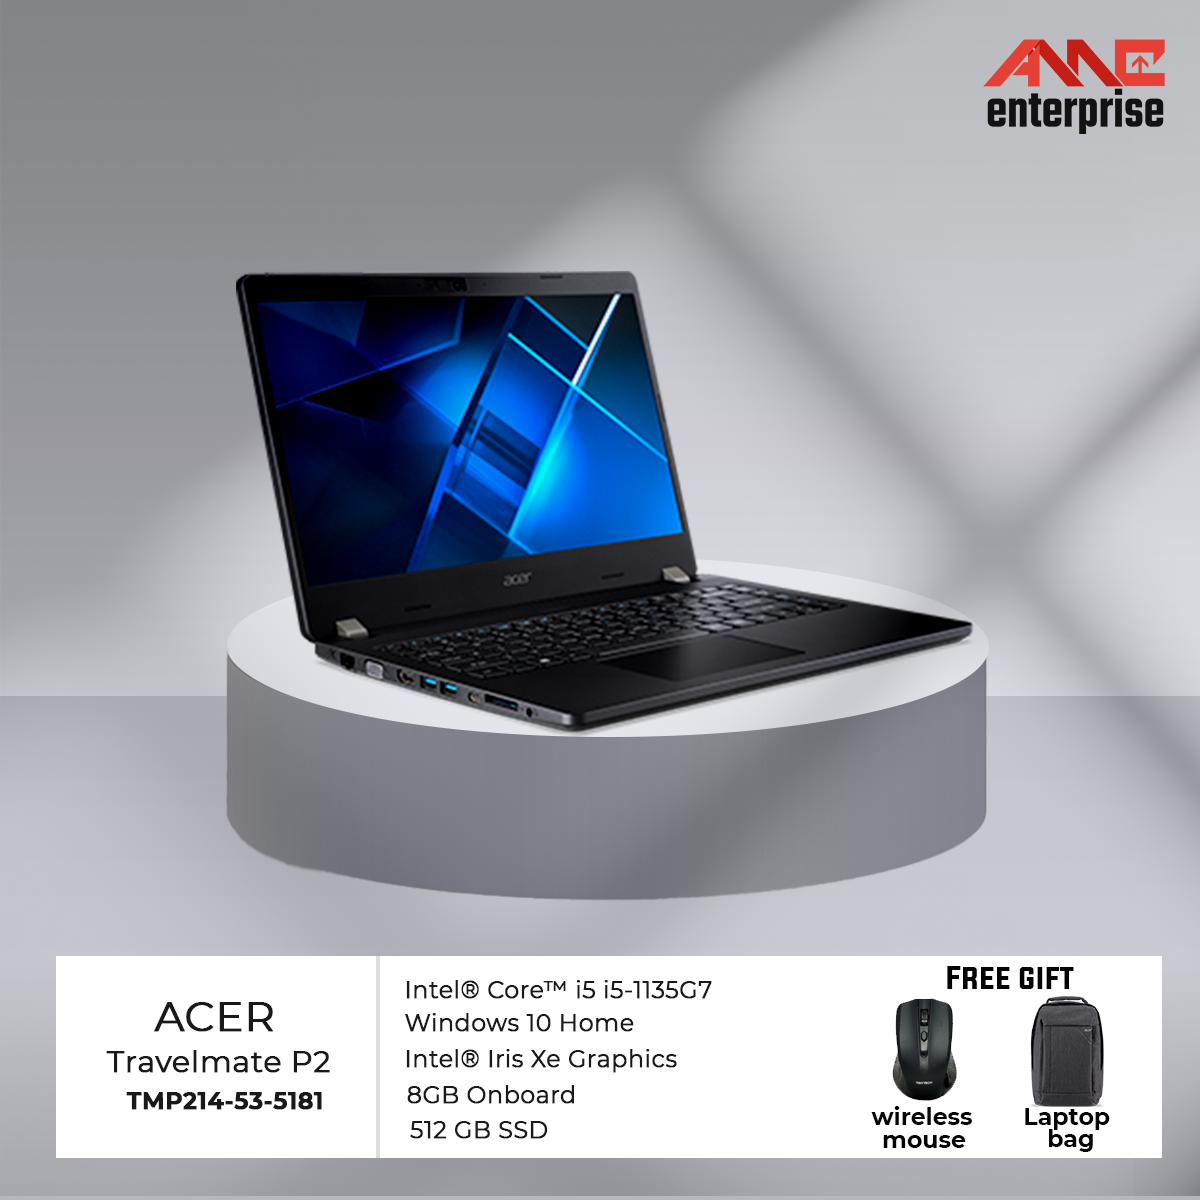 ACER Travelmate P2 TMP214-53-5181 (2).png